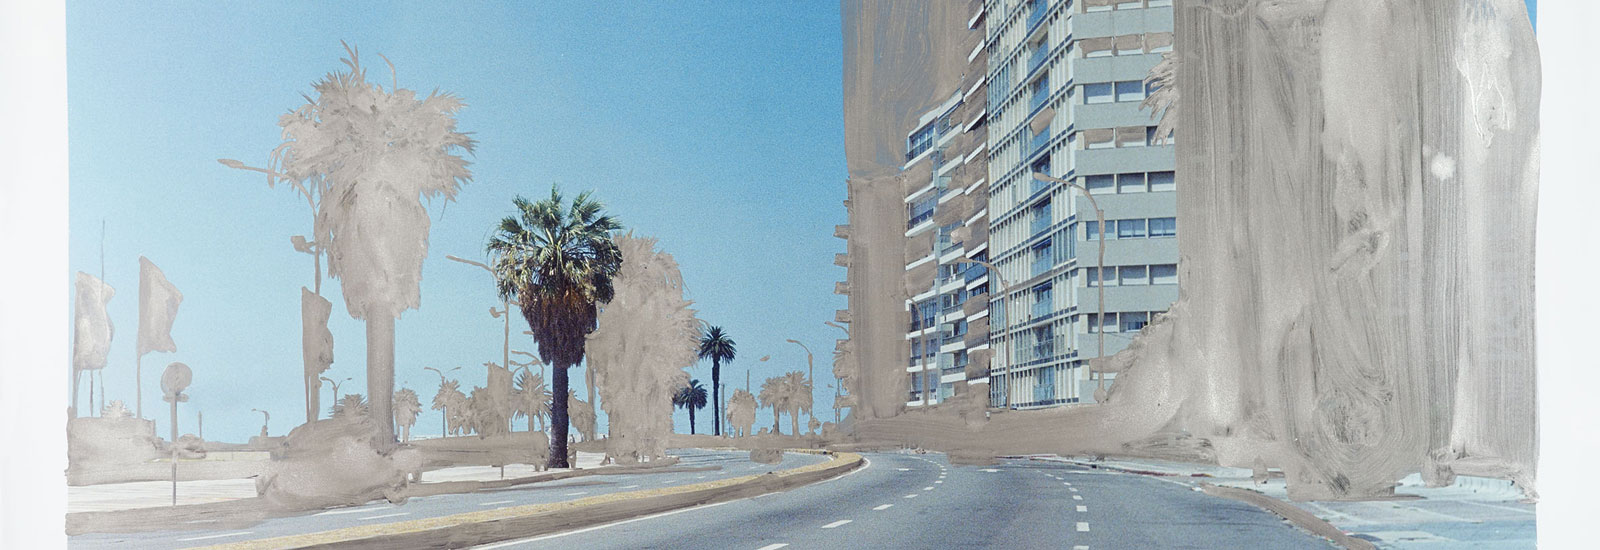 Playa Pocitos, 2016 (detail), silver pigmented gouache on hand printed photograph, 125 x 182 cm © Peter Klare